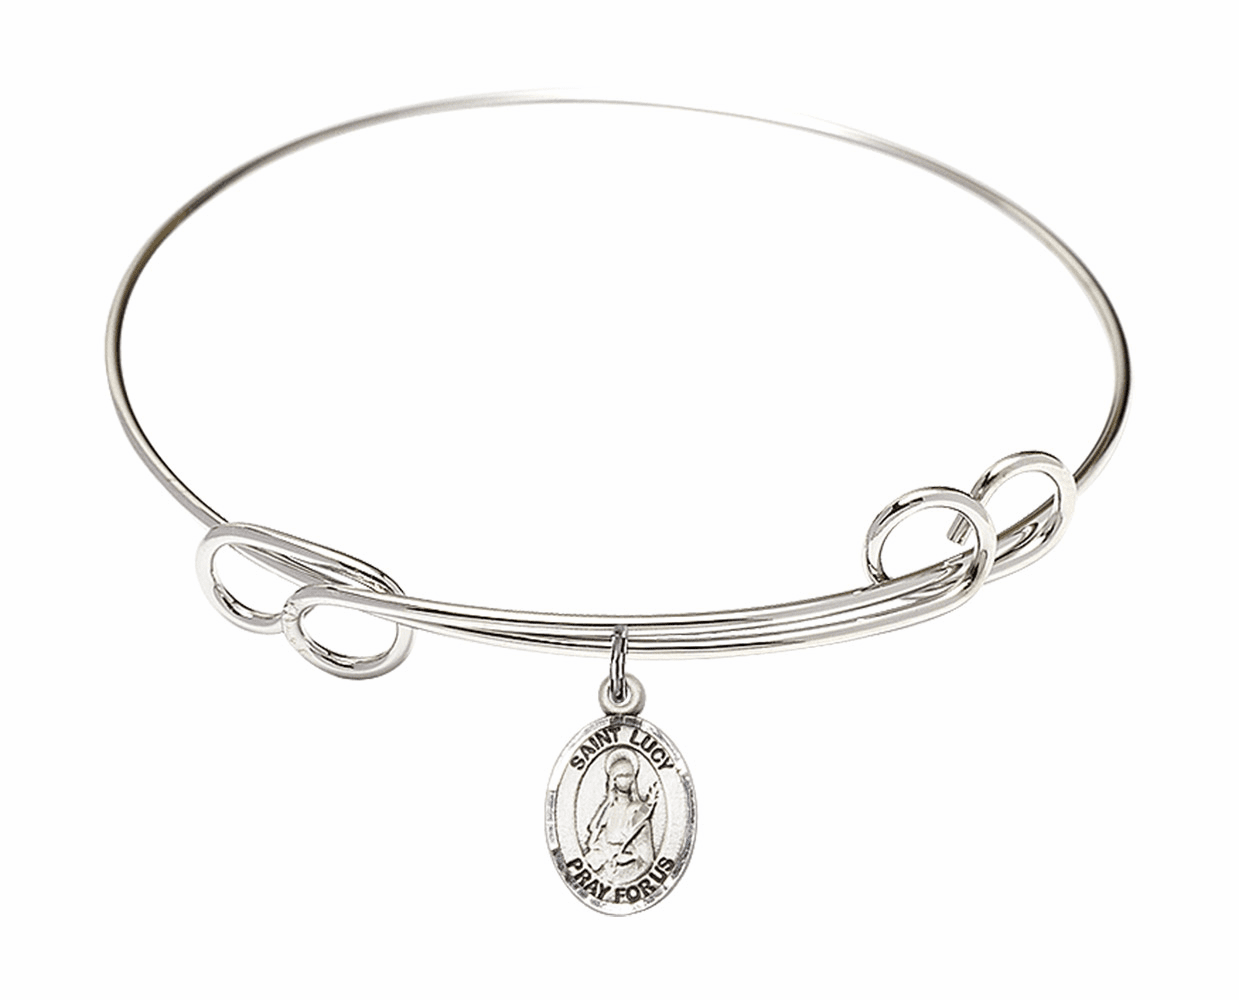 Round Loop St Lucy Bangle Charm Bracelet by Bliss